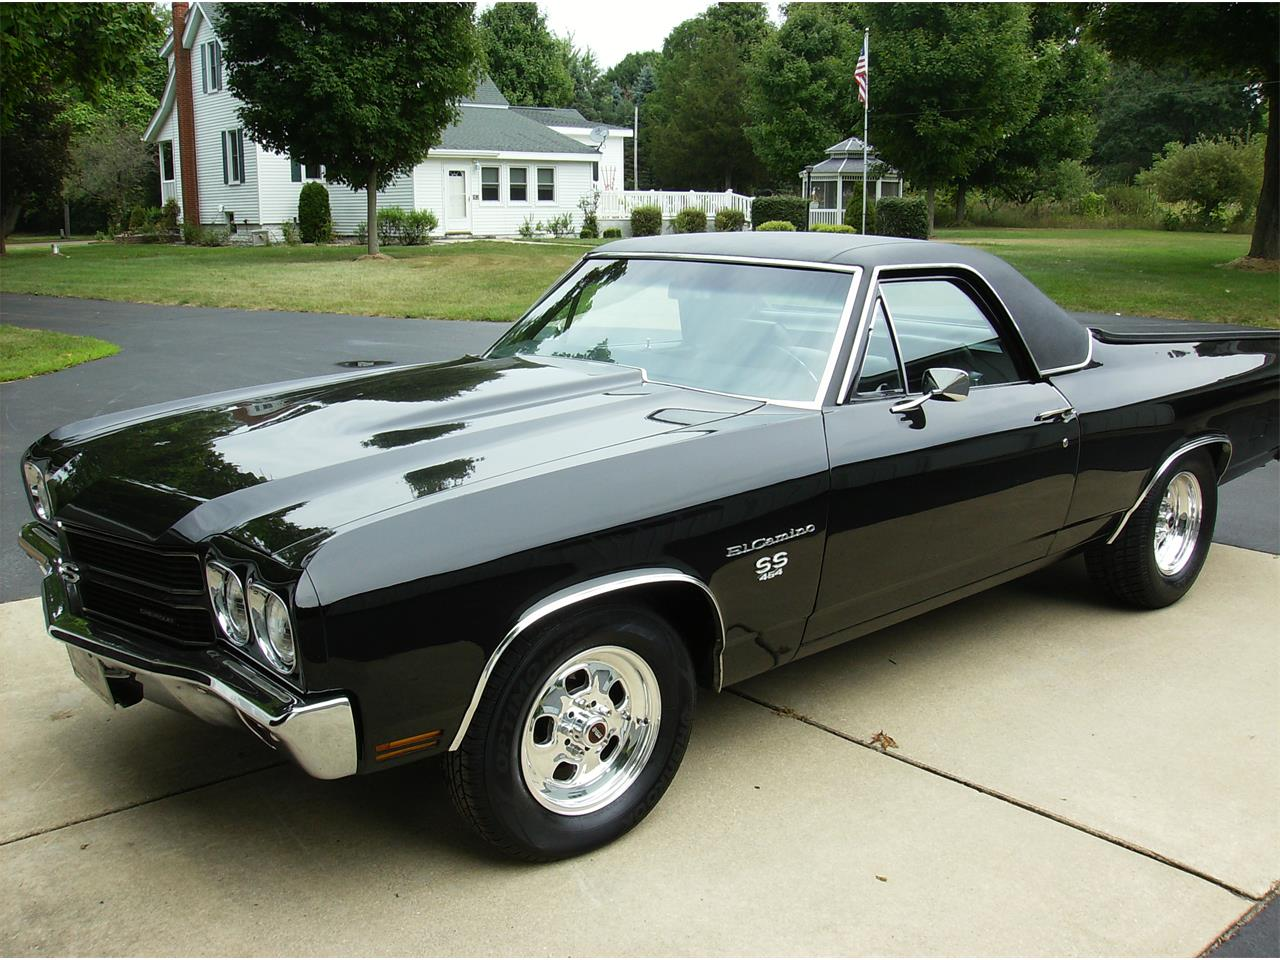 1970 Chevrolet El Camino Ss For Sale Classiccars Com